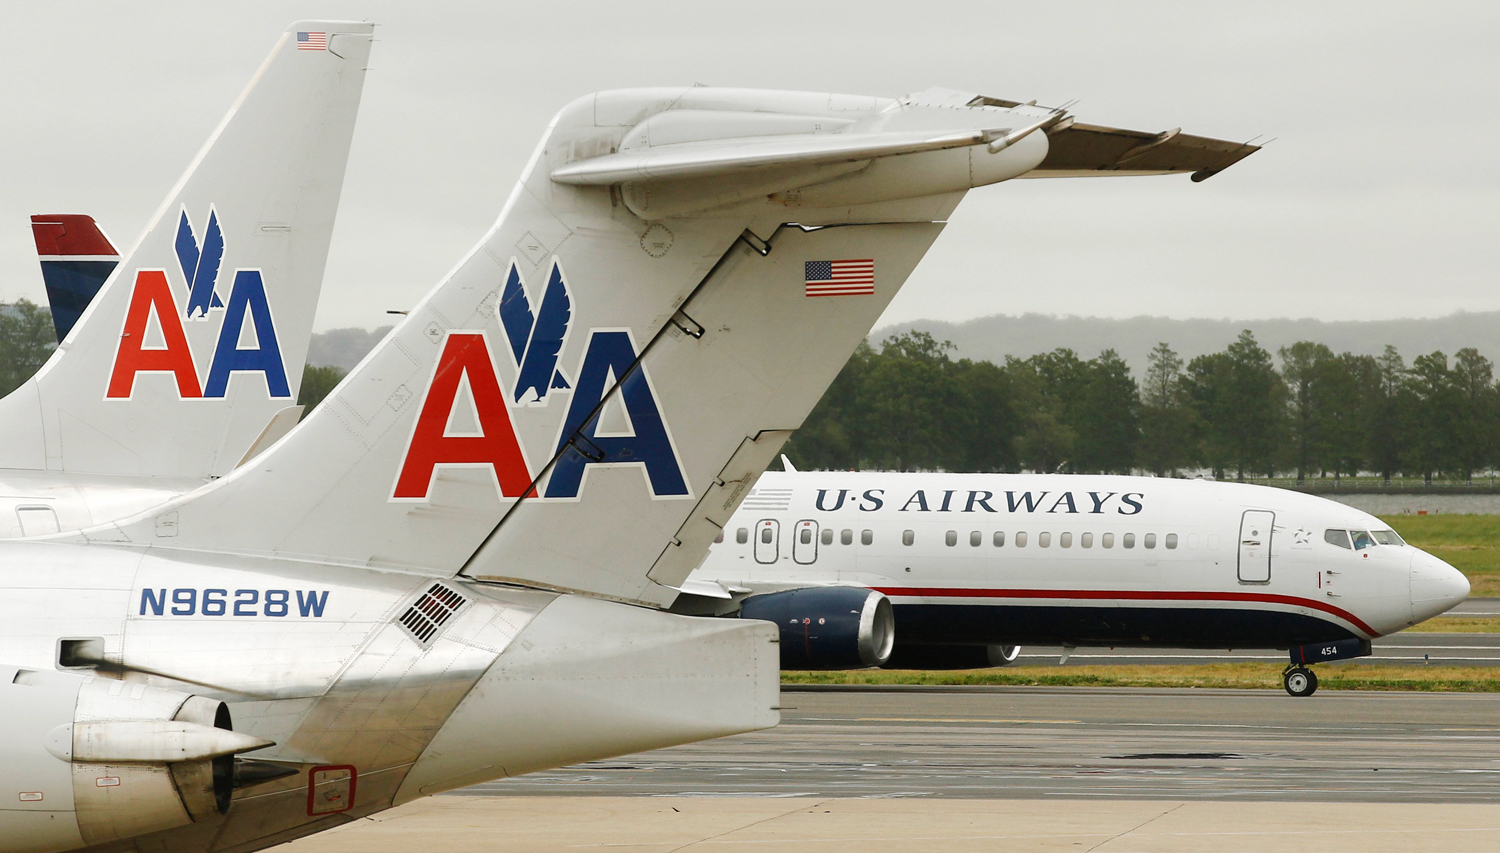 A US Airways plane passes American Airlines planes at Ronald Reagan National Airport in Washington in this April 23, 2012 file photo. AMR Corp and U.S...